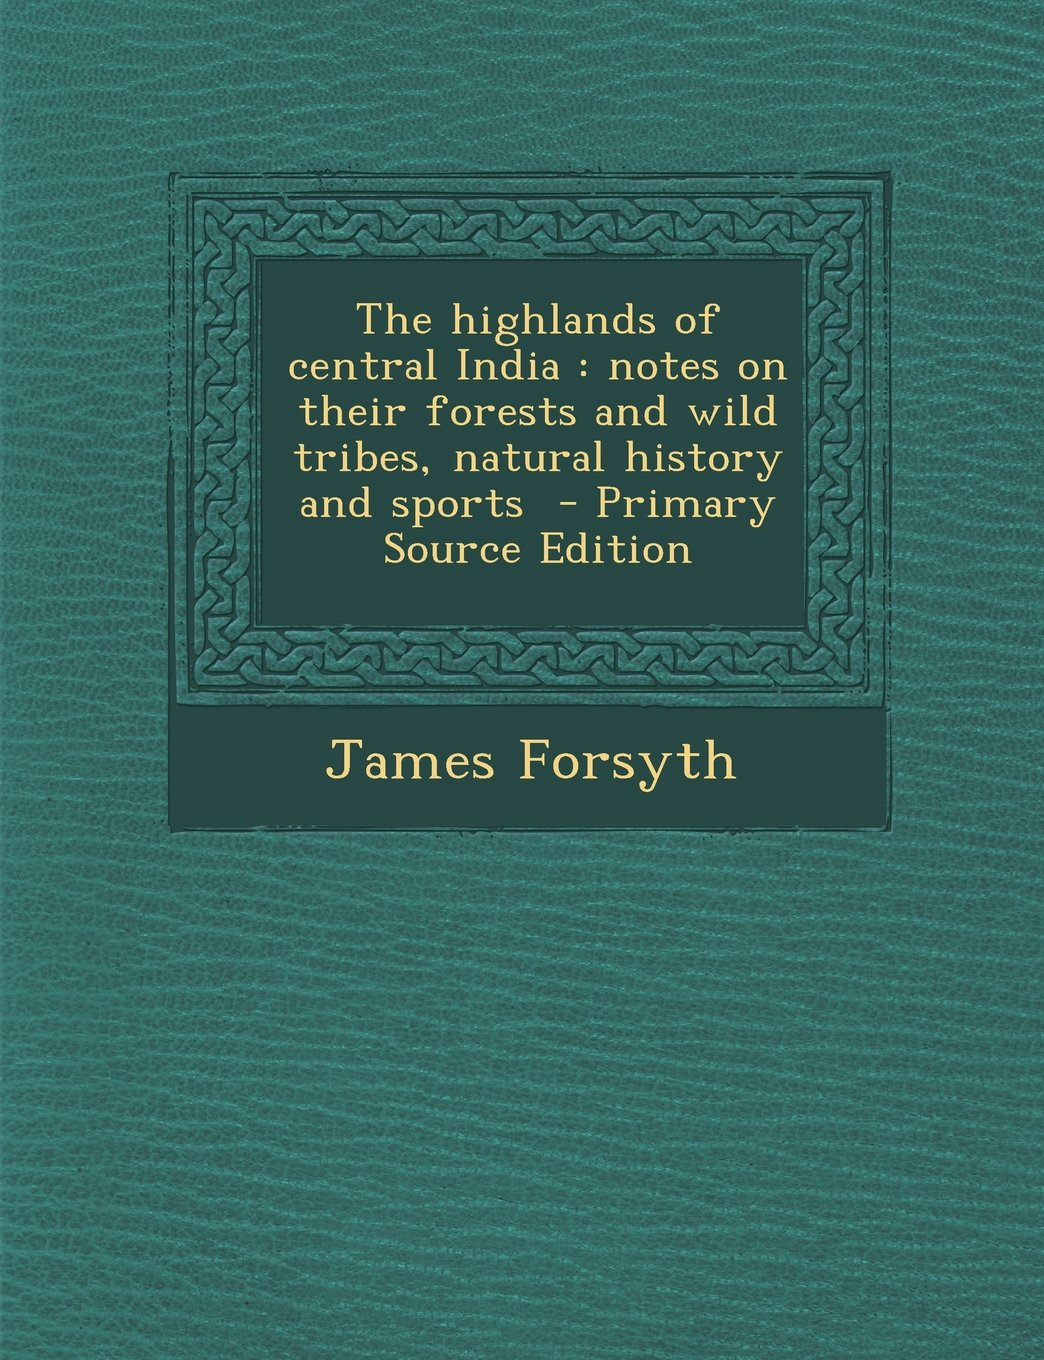 Download The Highlands of Central India: Notes on Their Forests and Wild Tribes, Natural History and Sports - Primary Source Edition PDF